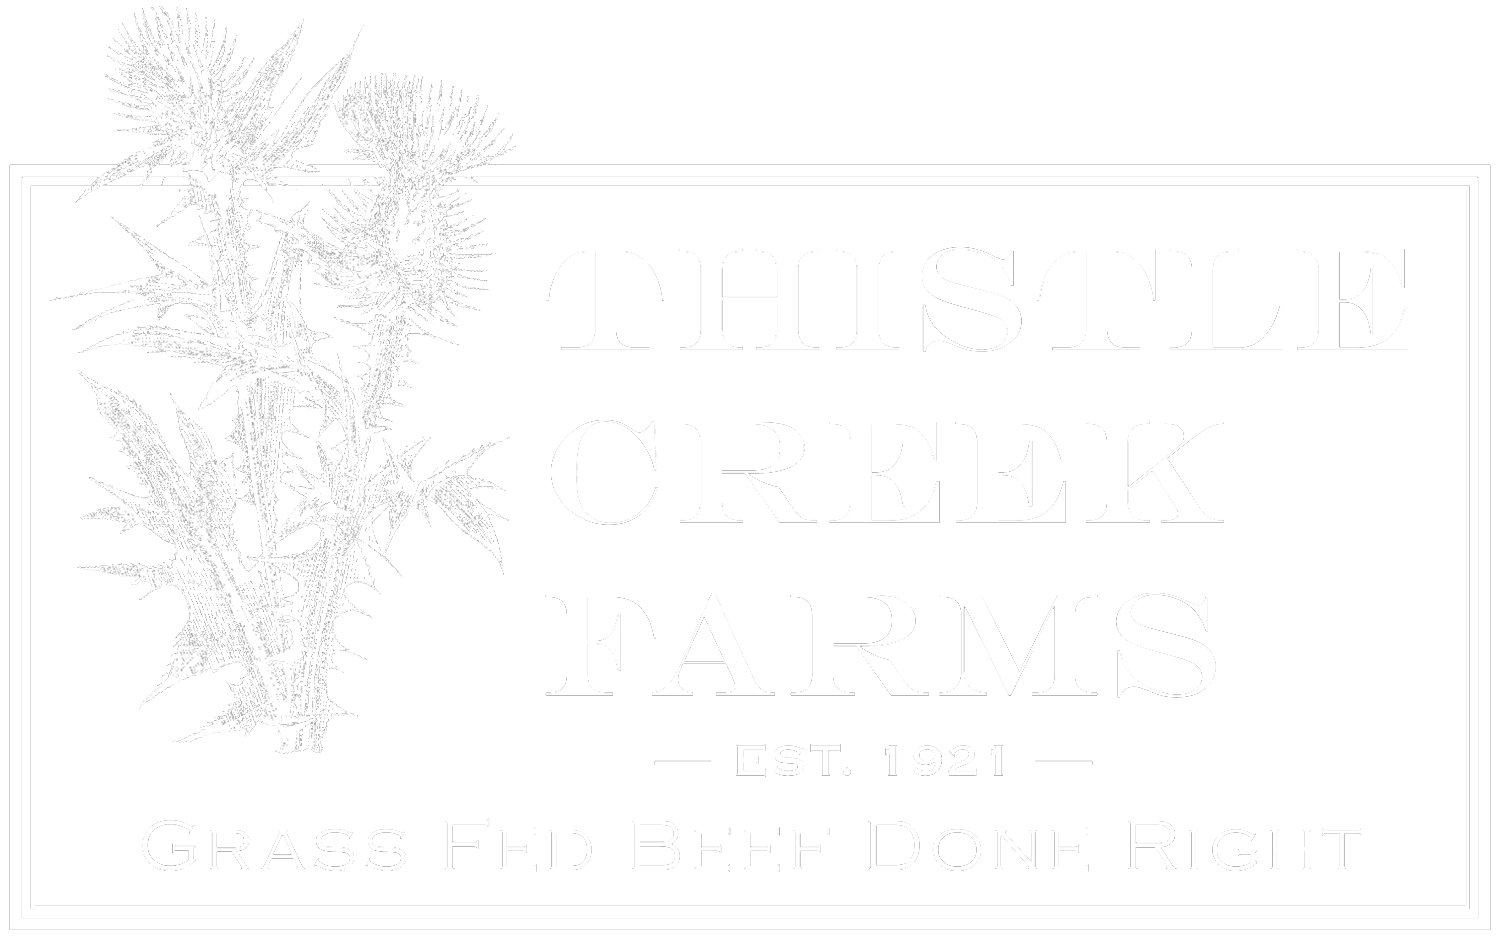 Thistle Creek Farms